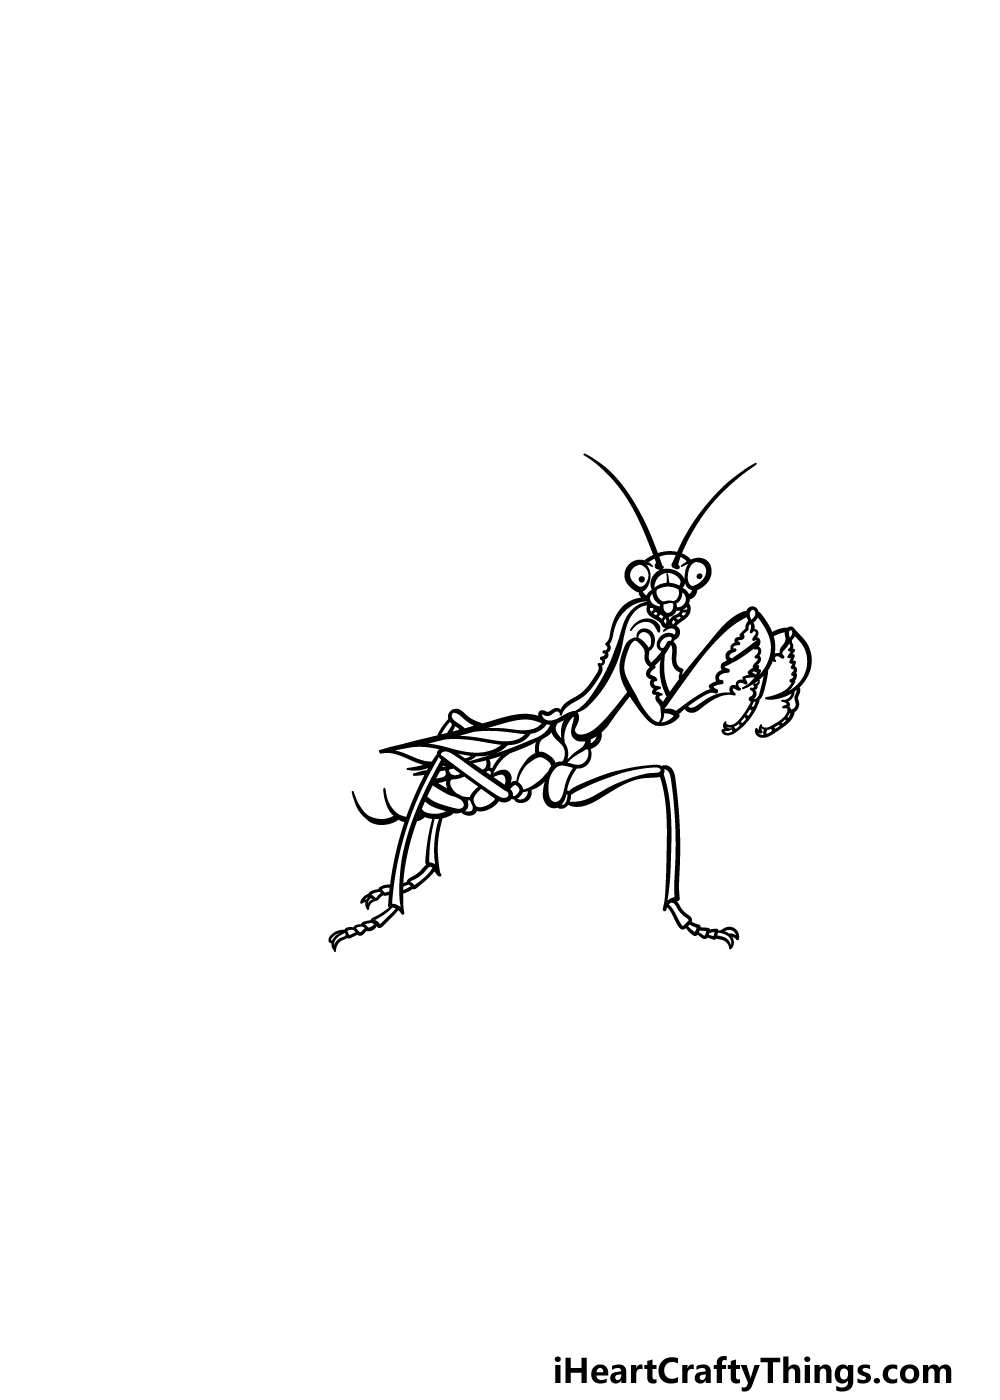 drawing an insect step 4